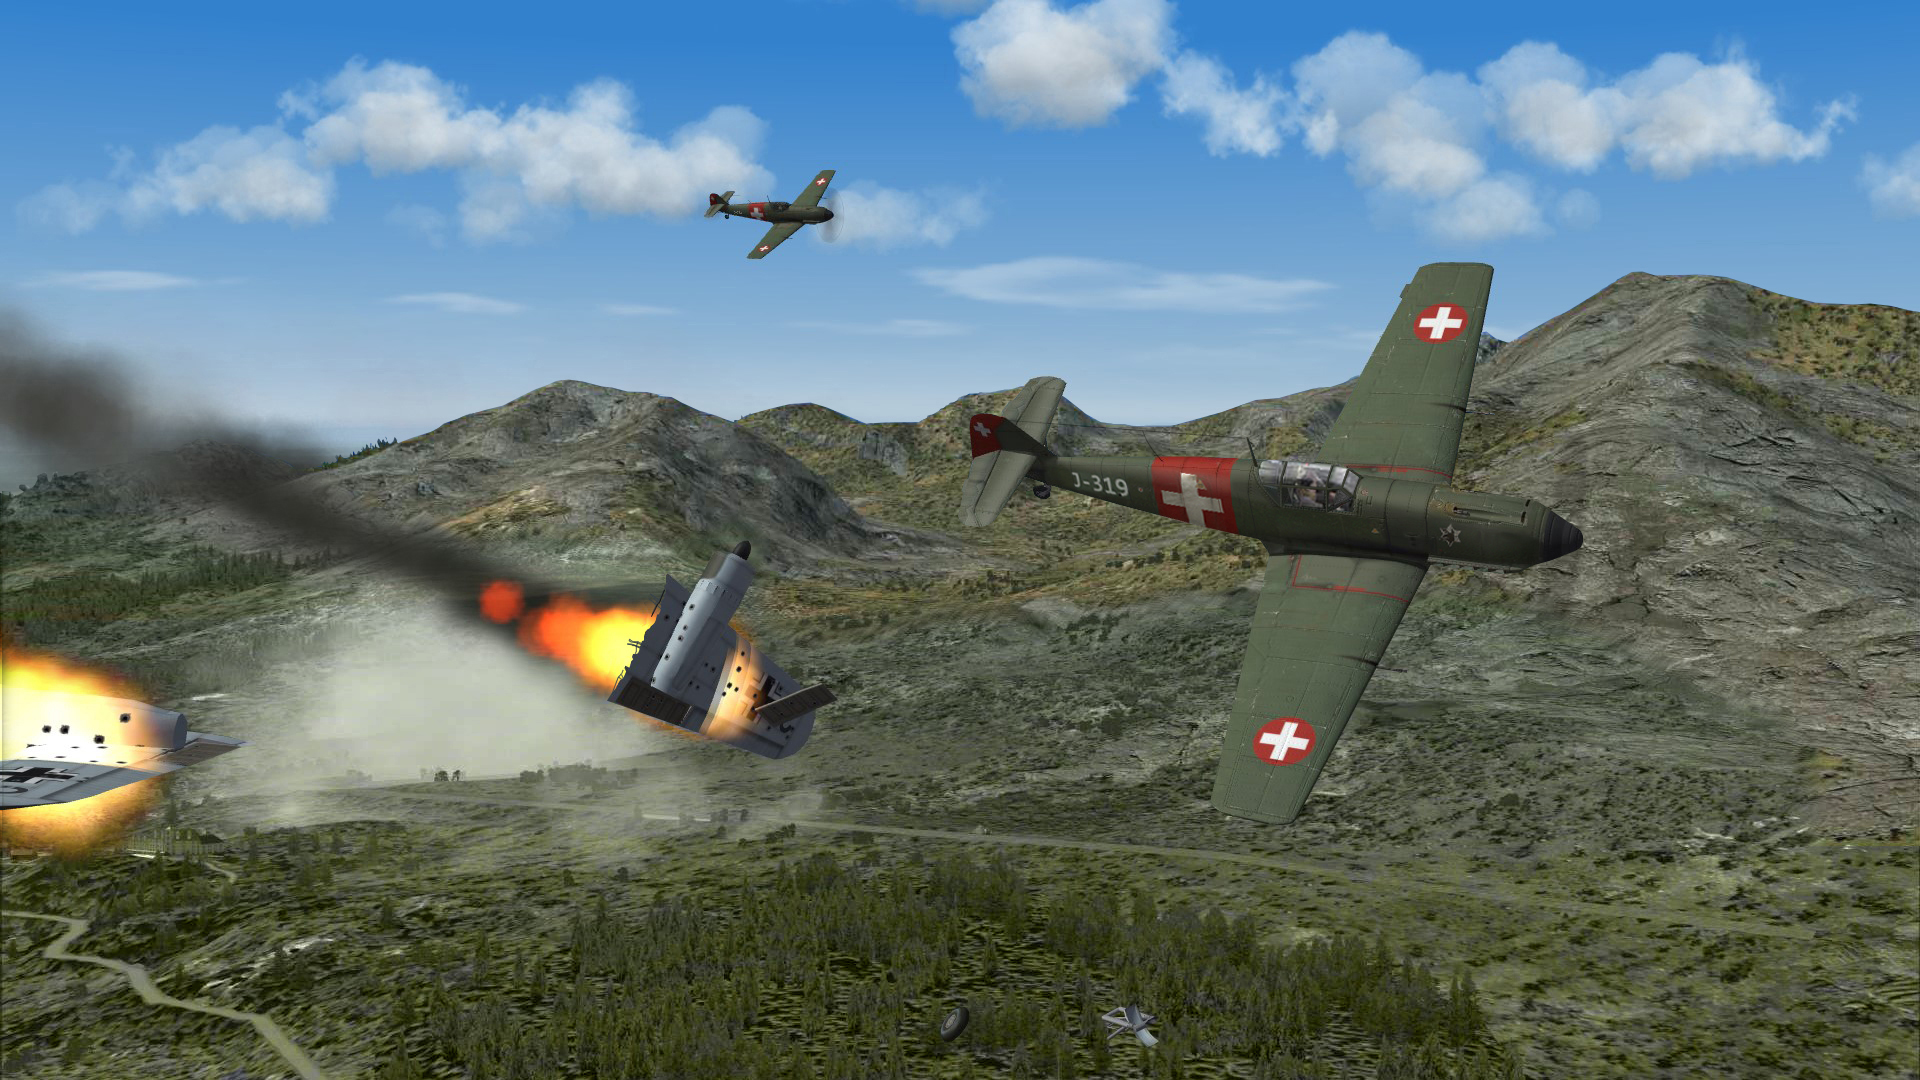 Another kill for this Bf109E3 of CP av6 06/1940